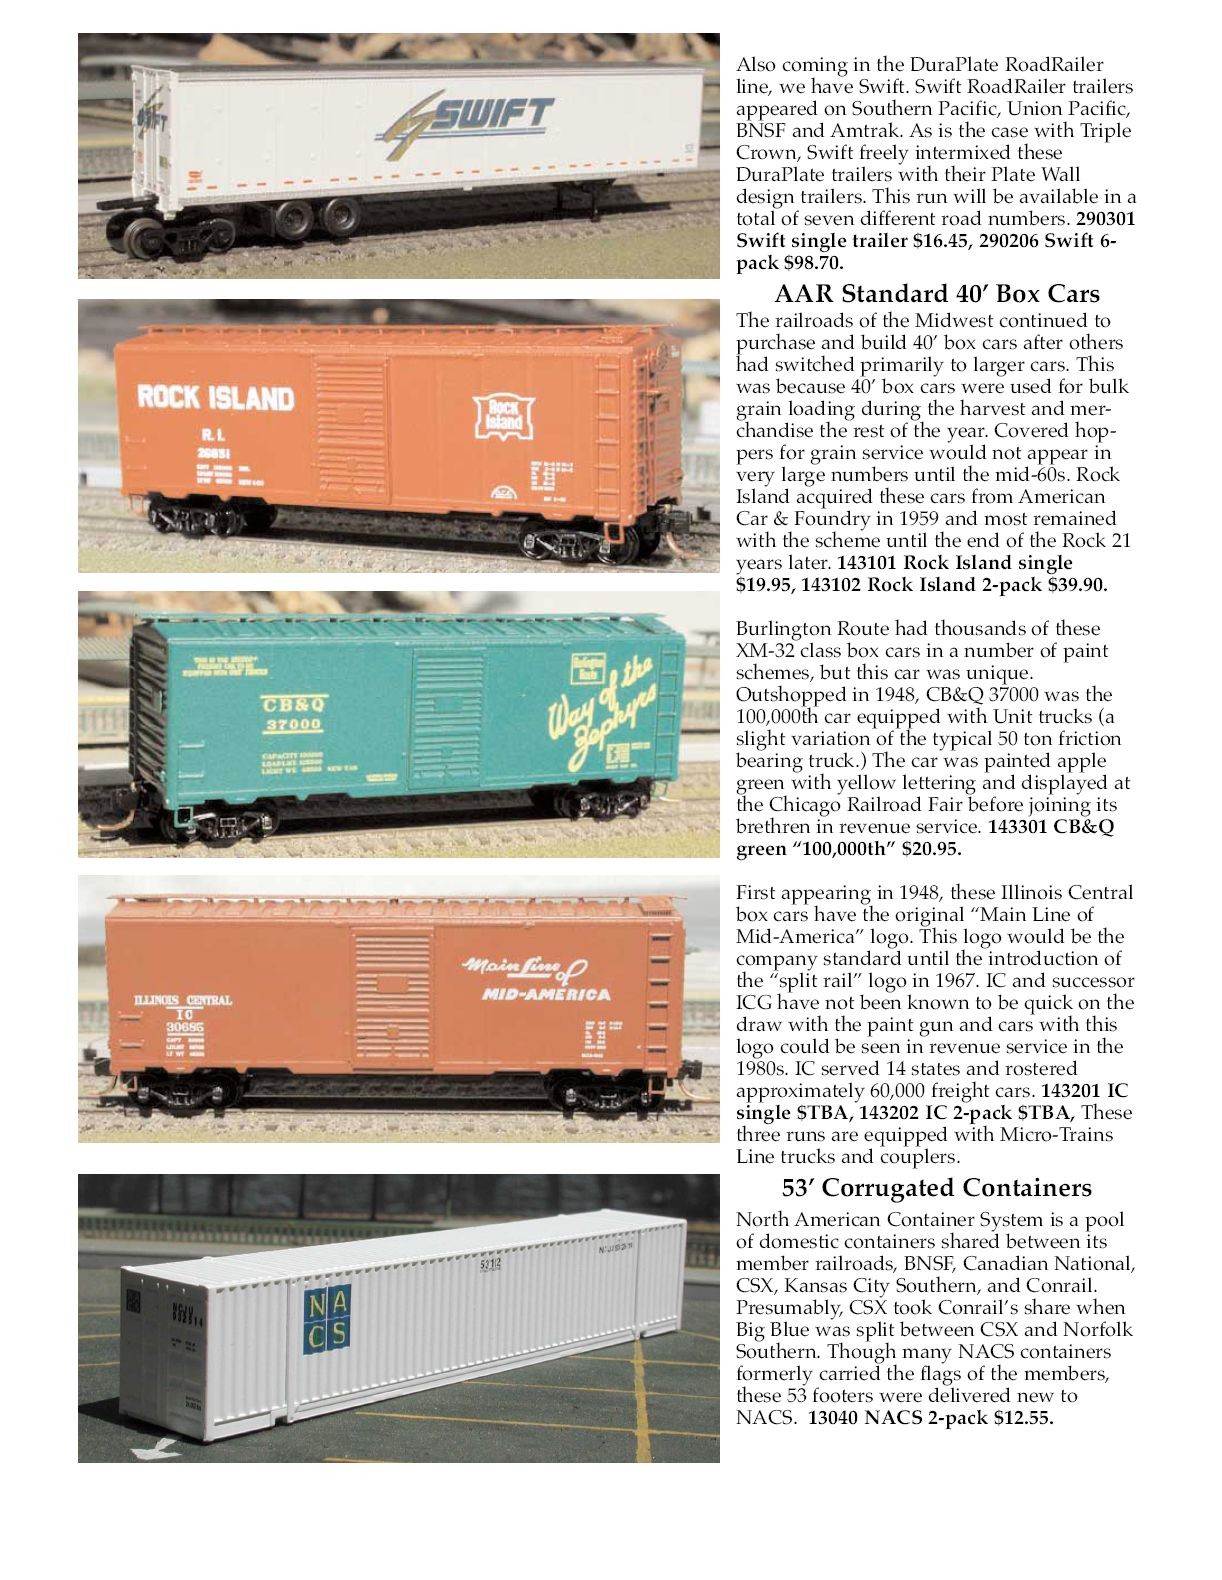 Deluxe 2nd Quarter Newletter May 2006 Page 2.5